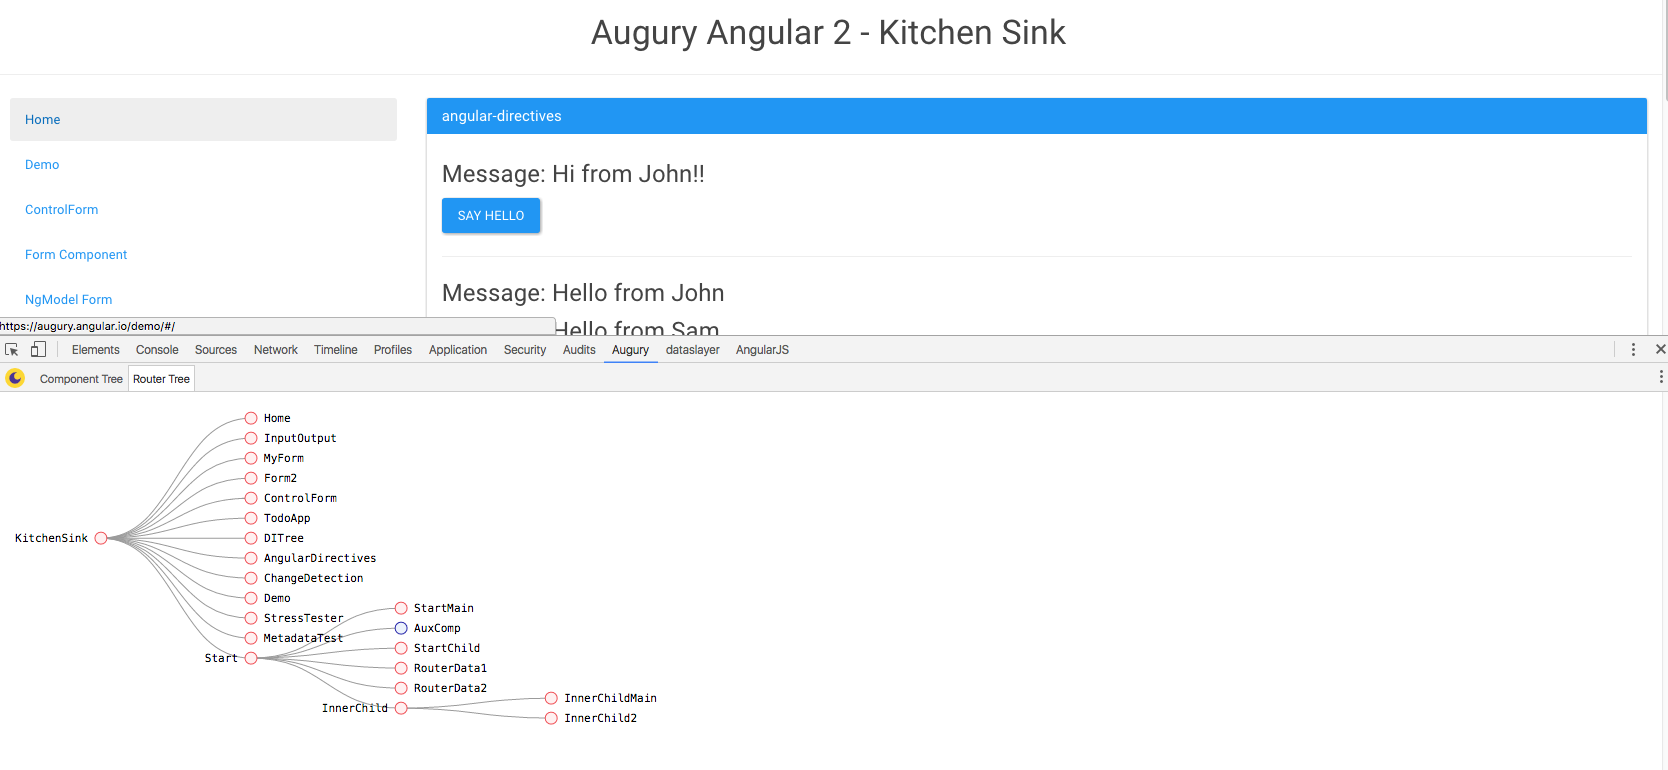 Augury Router tree | Angular 2 developer tools